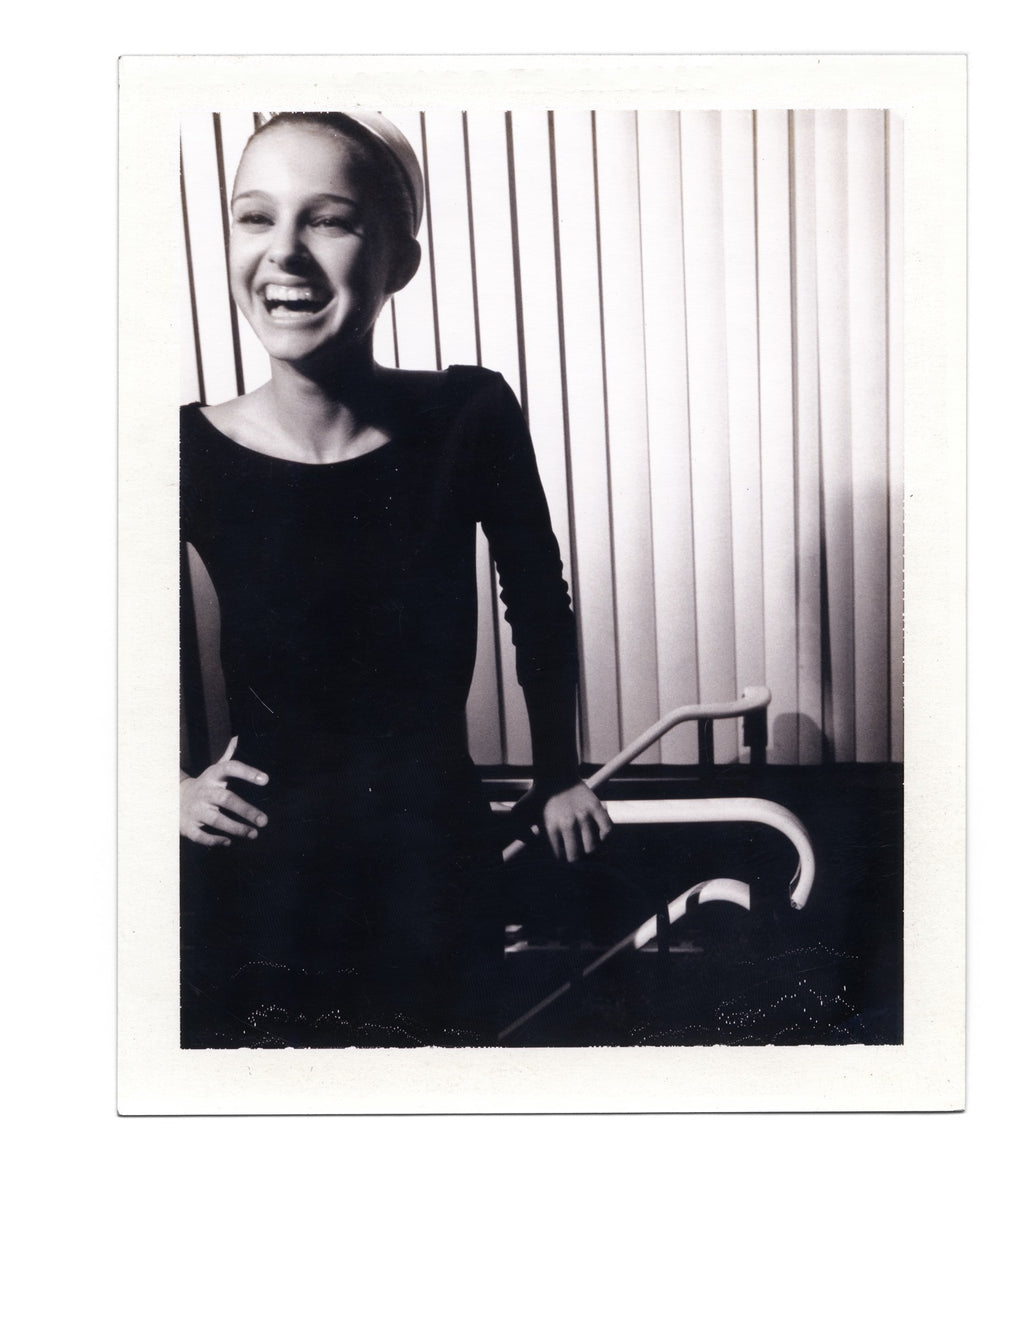 Natalie Portman - Original Polaroid by Dewey Nicks